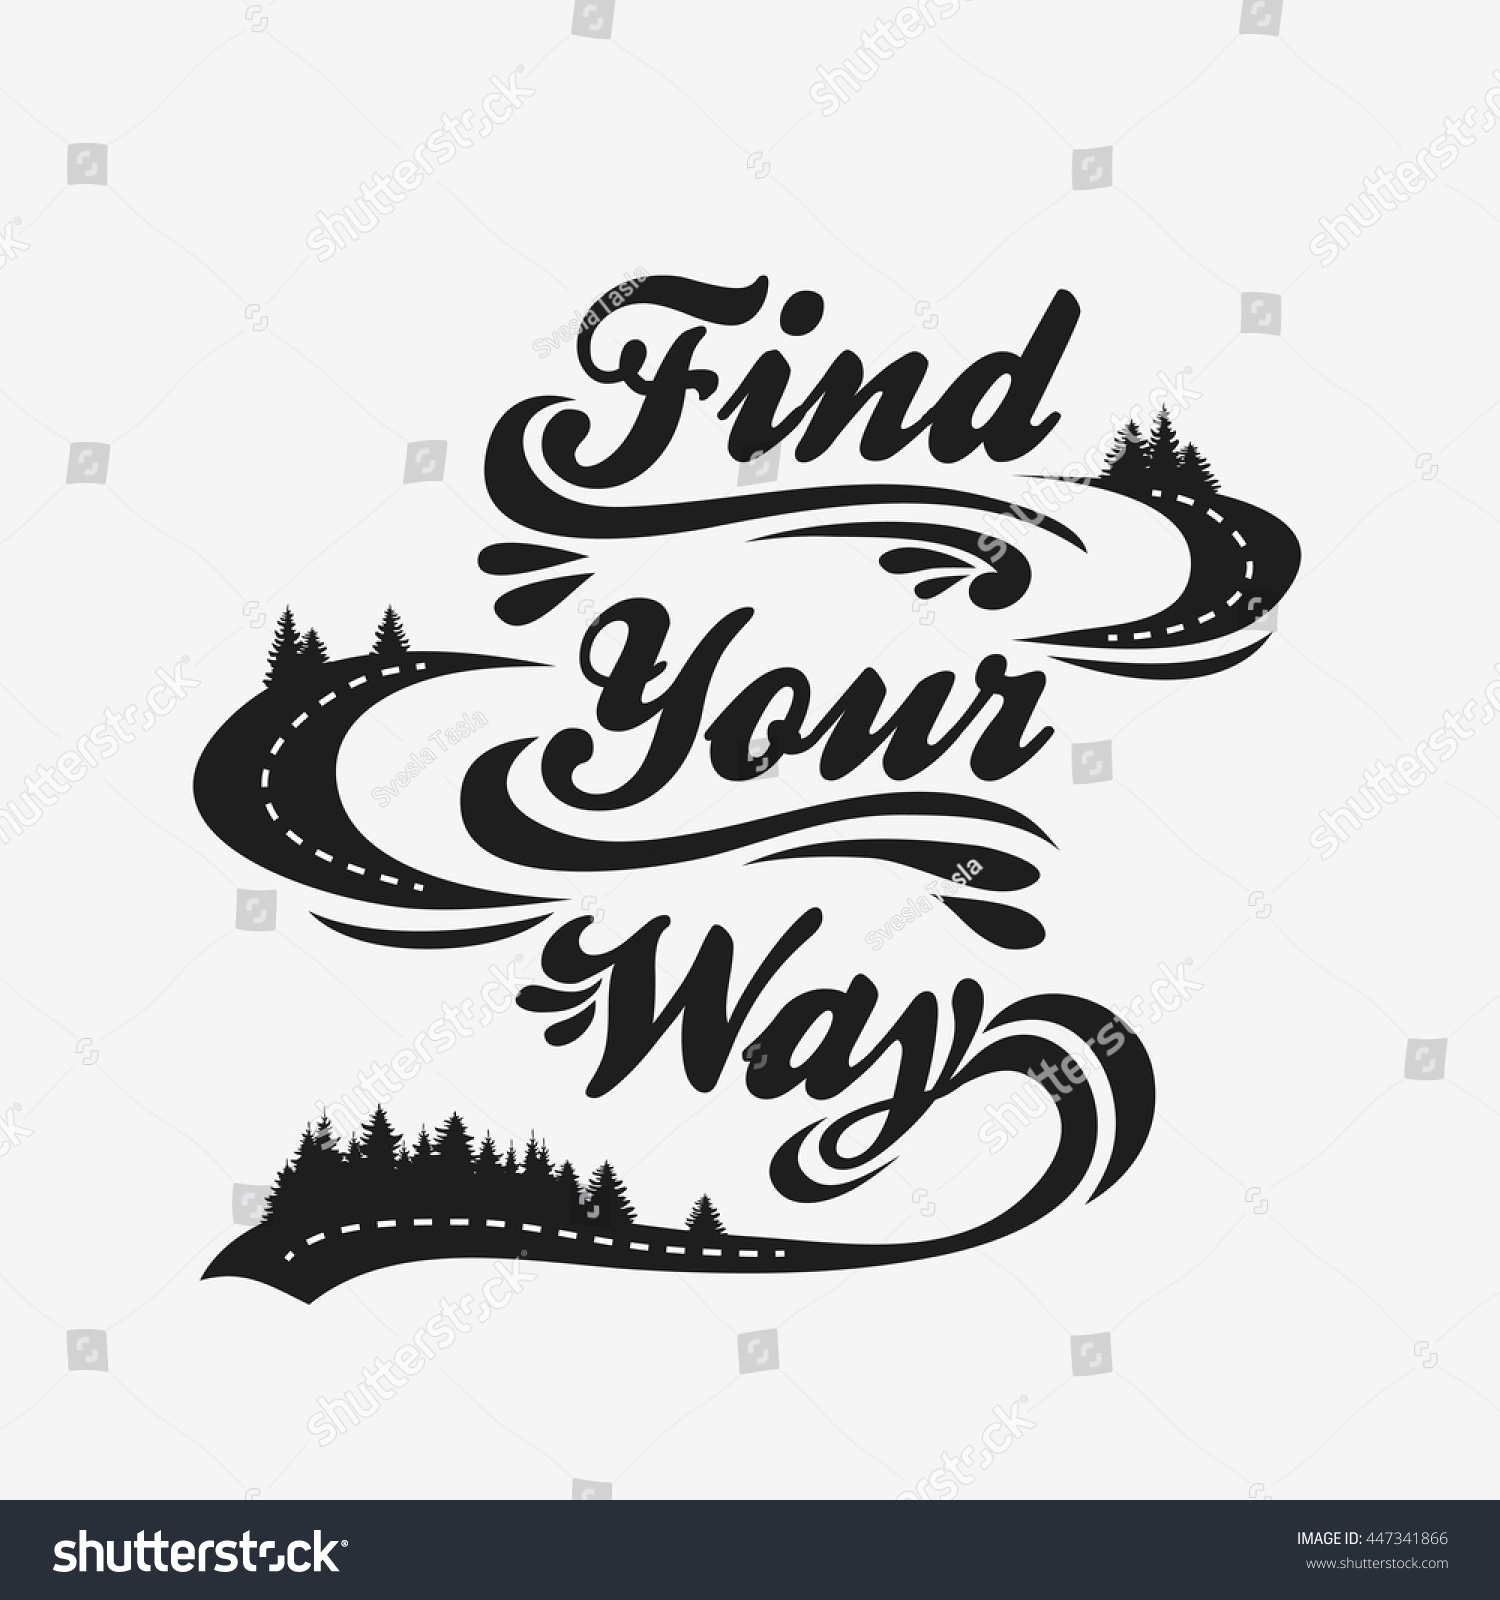 Designed Your Way: Find Your Way Hand Drawn Typographic Stock Vector 447341866